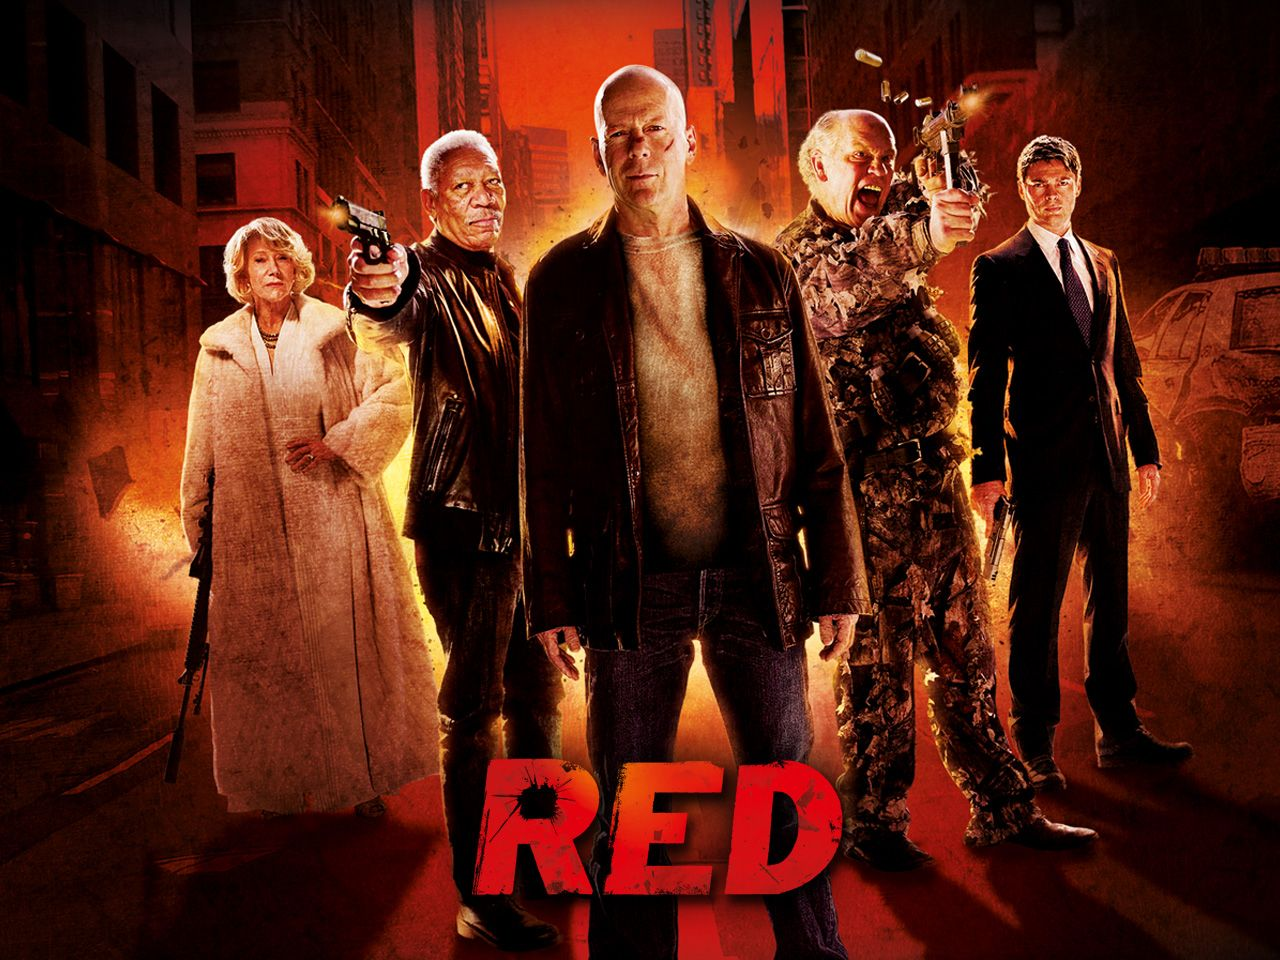 Red Movie Bruce Willis Red Bruce Willis Wallpapers Cinecomics Fr